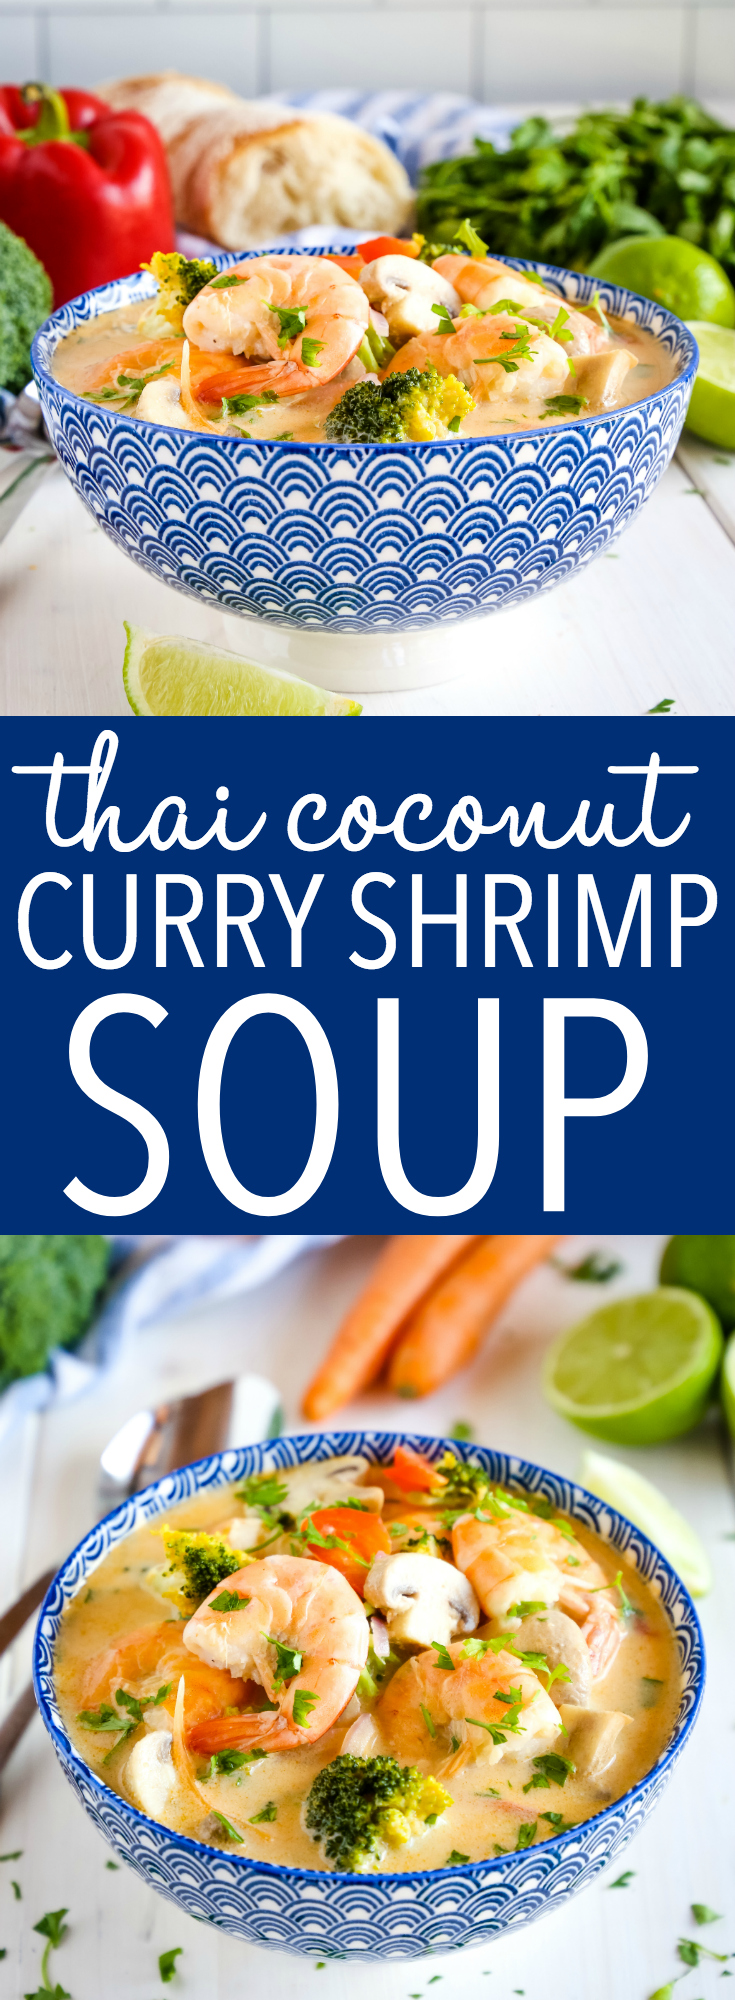 This Thai Coconut Curry Shrimp Soup is packed with vegetables and bursting with Thai flavours! It's dairy-free and comes together in 30 minutes or less! Recipe from thebusybaker.ca! #soup #thai #shrimp #seafood #healthy #veggies #dinner #30minutes #meal #family #blue #asian #padthai #curry #coconut #dairyfree #creamy via @busybakerblog